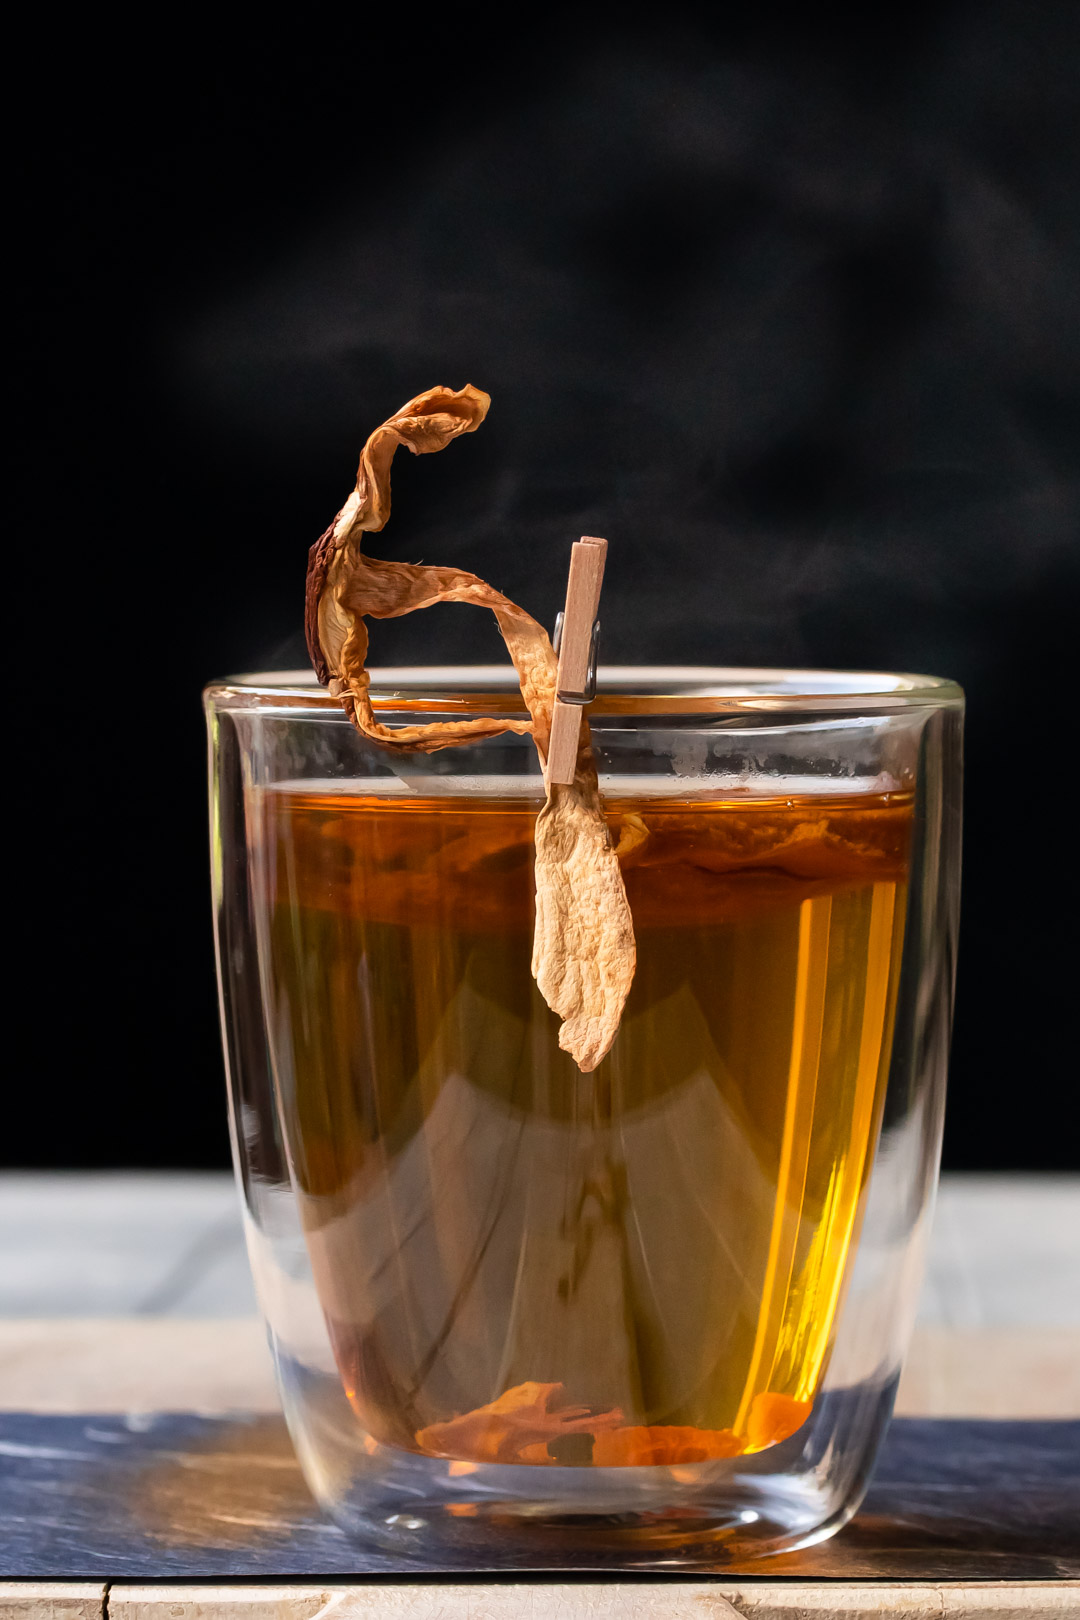 umami hot whiskey toddy with shiitake mushrooms and steam